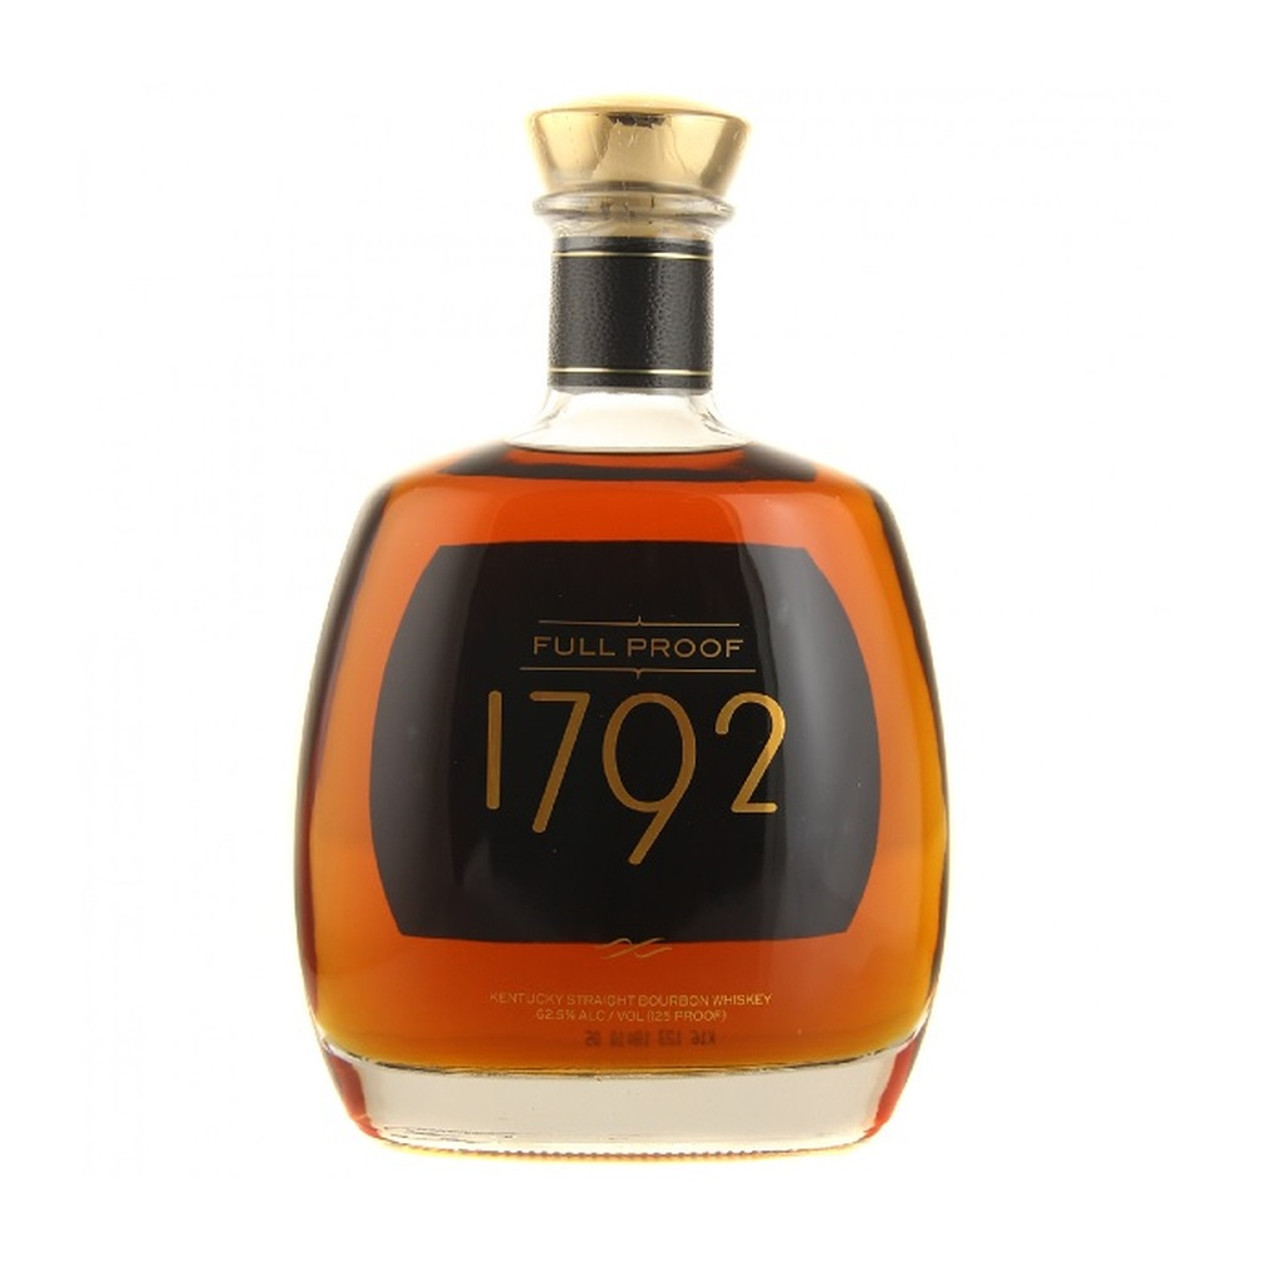 Strong and full of flavor, this bold bourbon boasts an incredible deep and smoky taste, superbly balanced with sweet vanilla and notes of caramel. A distinctively rich flavor comes from bottling at its original 125 barrel entry proof.